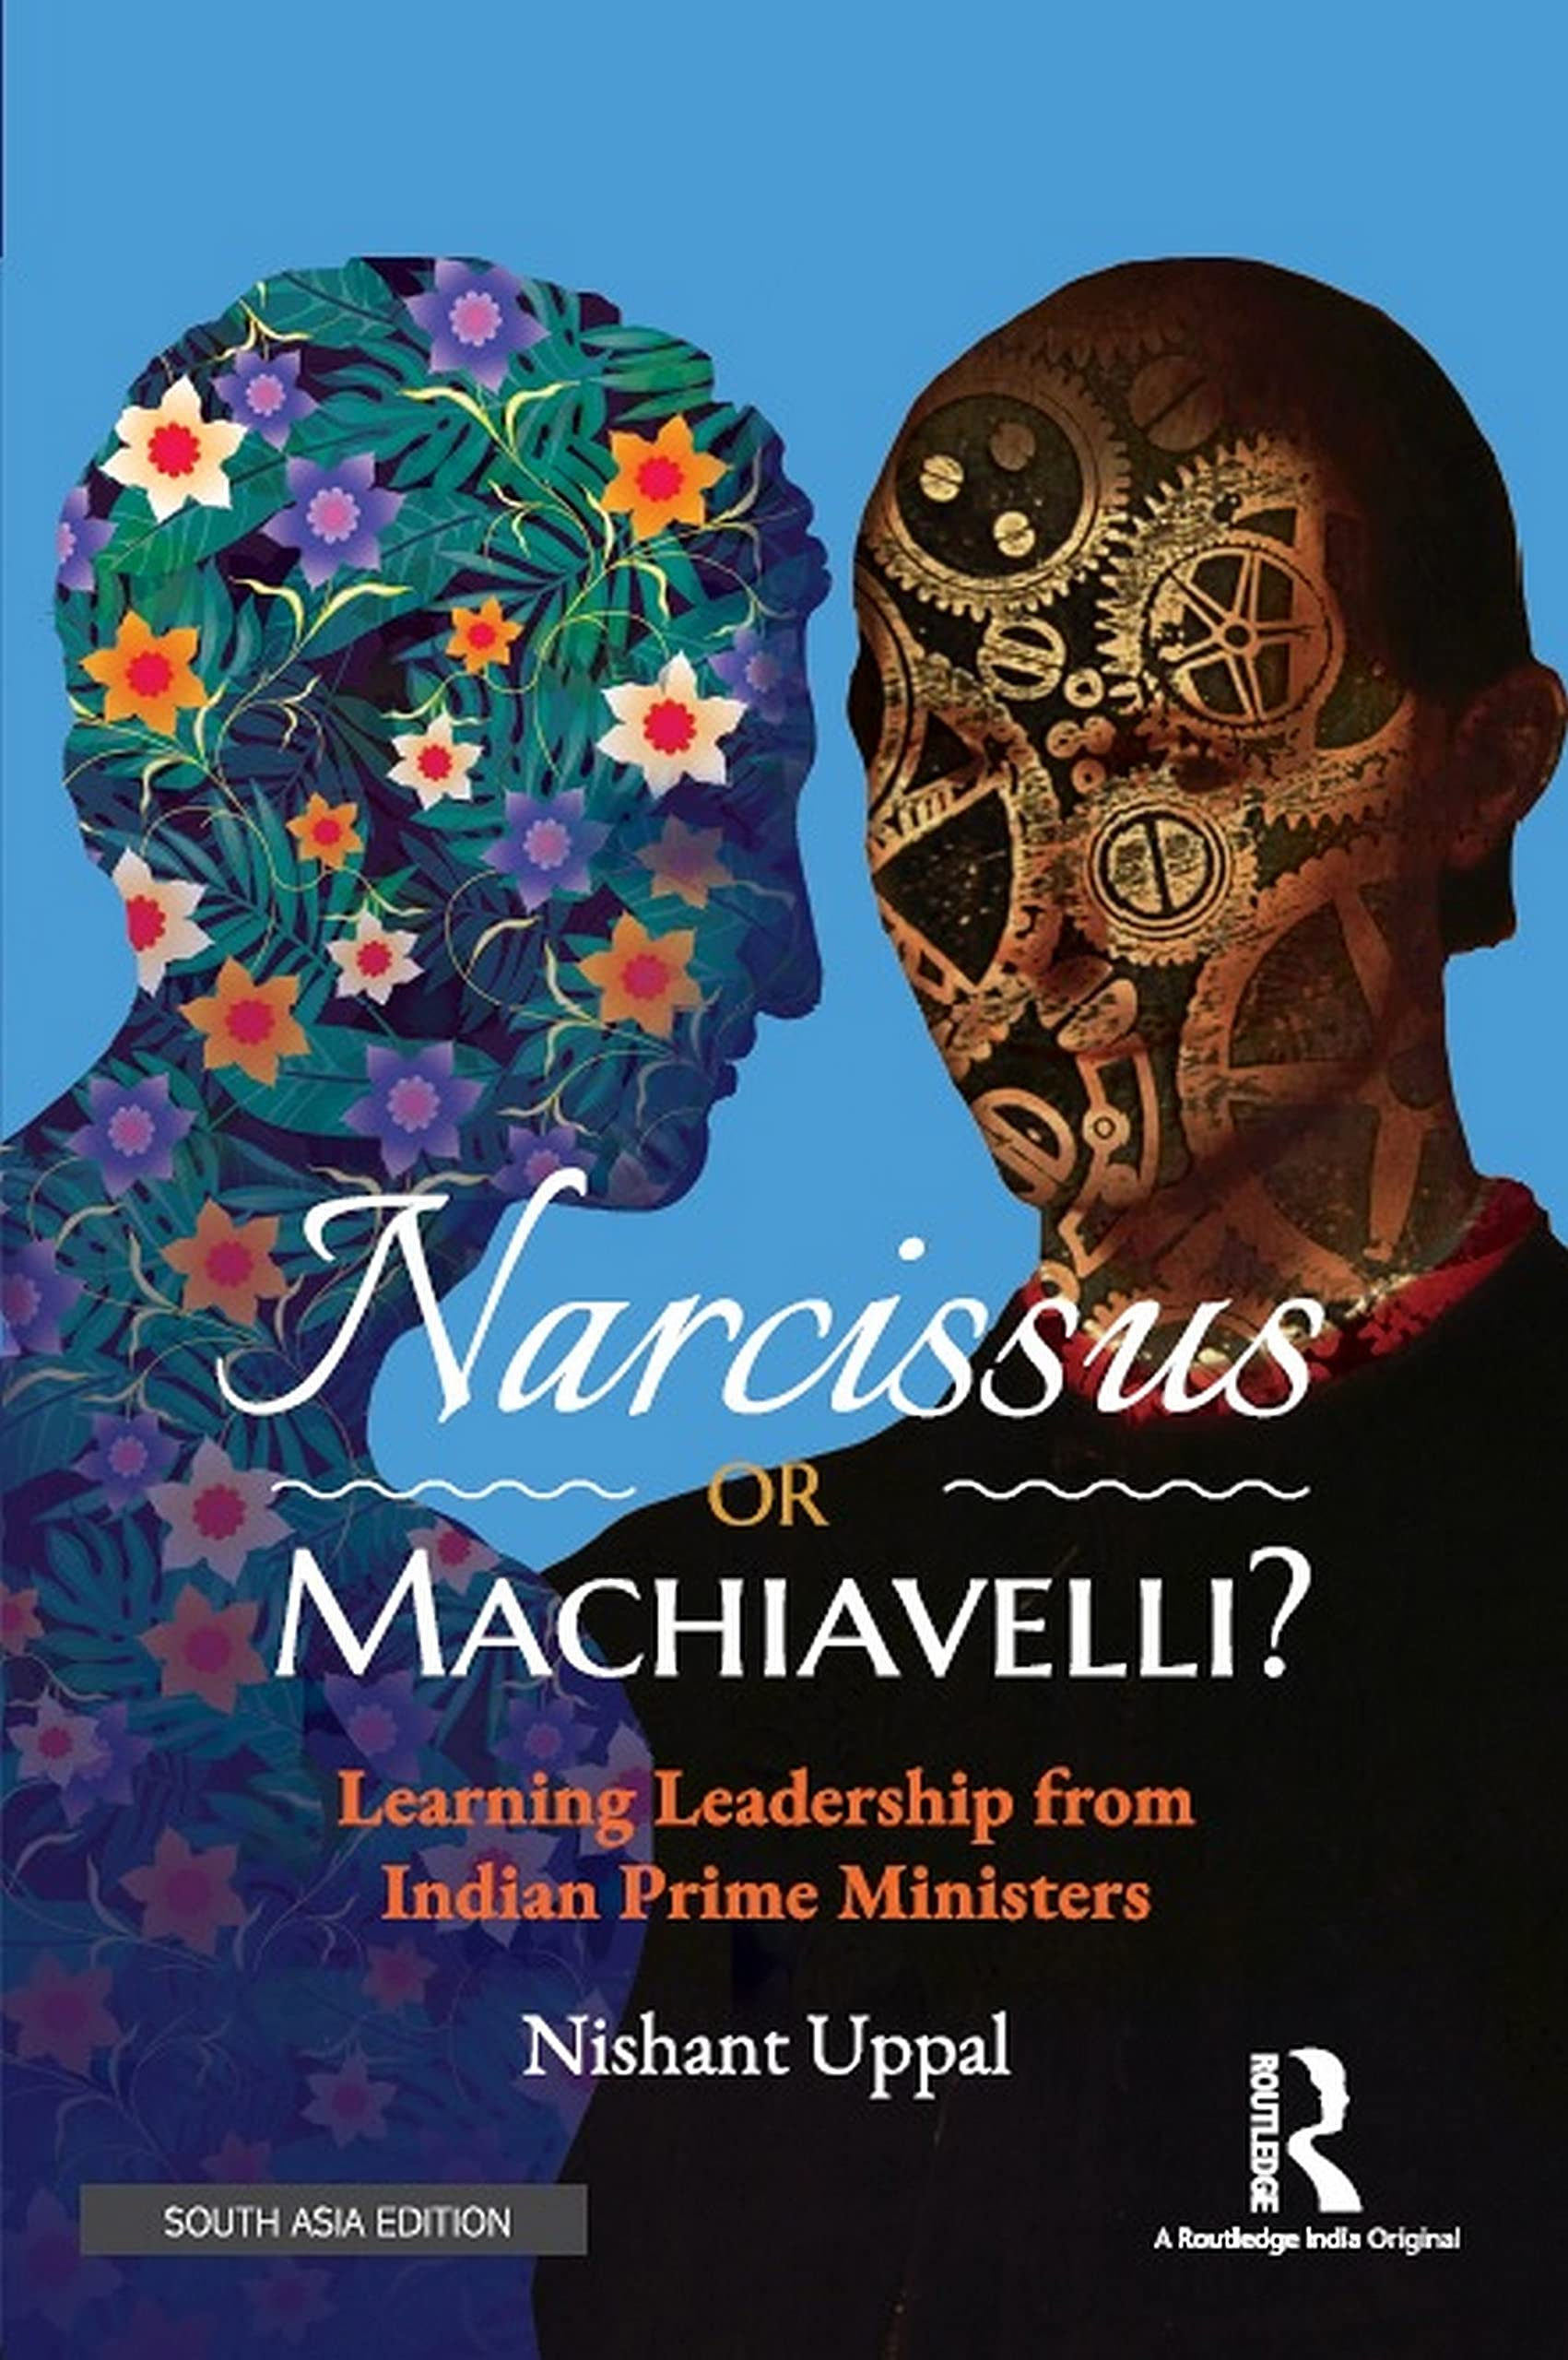 Book Excerpt: Narcissus or Machiavelli? Leadership skills of Indian Prime Ministers examined for the first time by Nishant Uppal